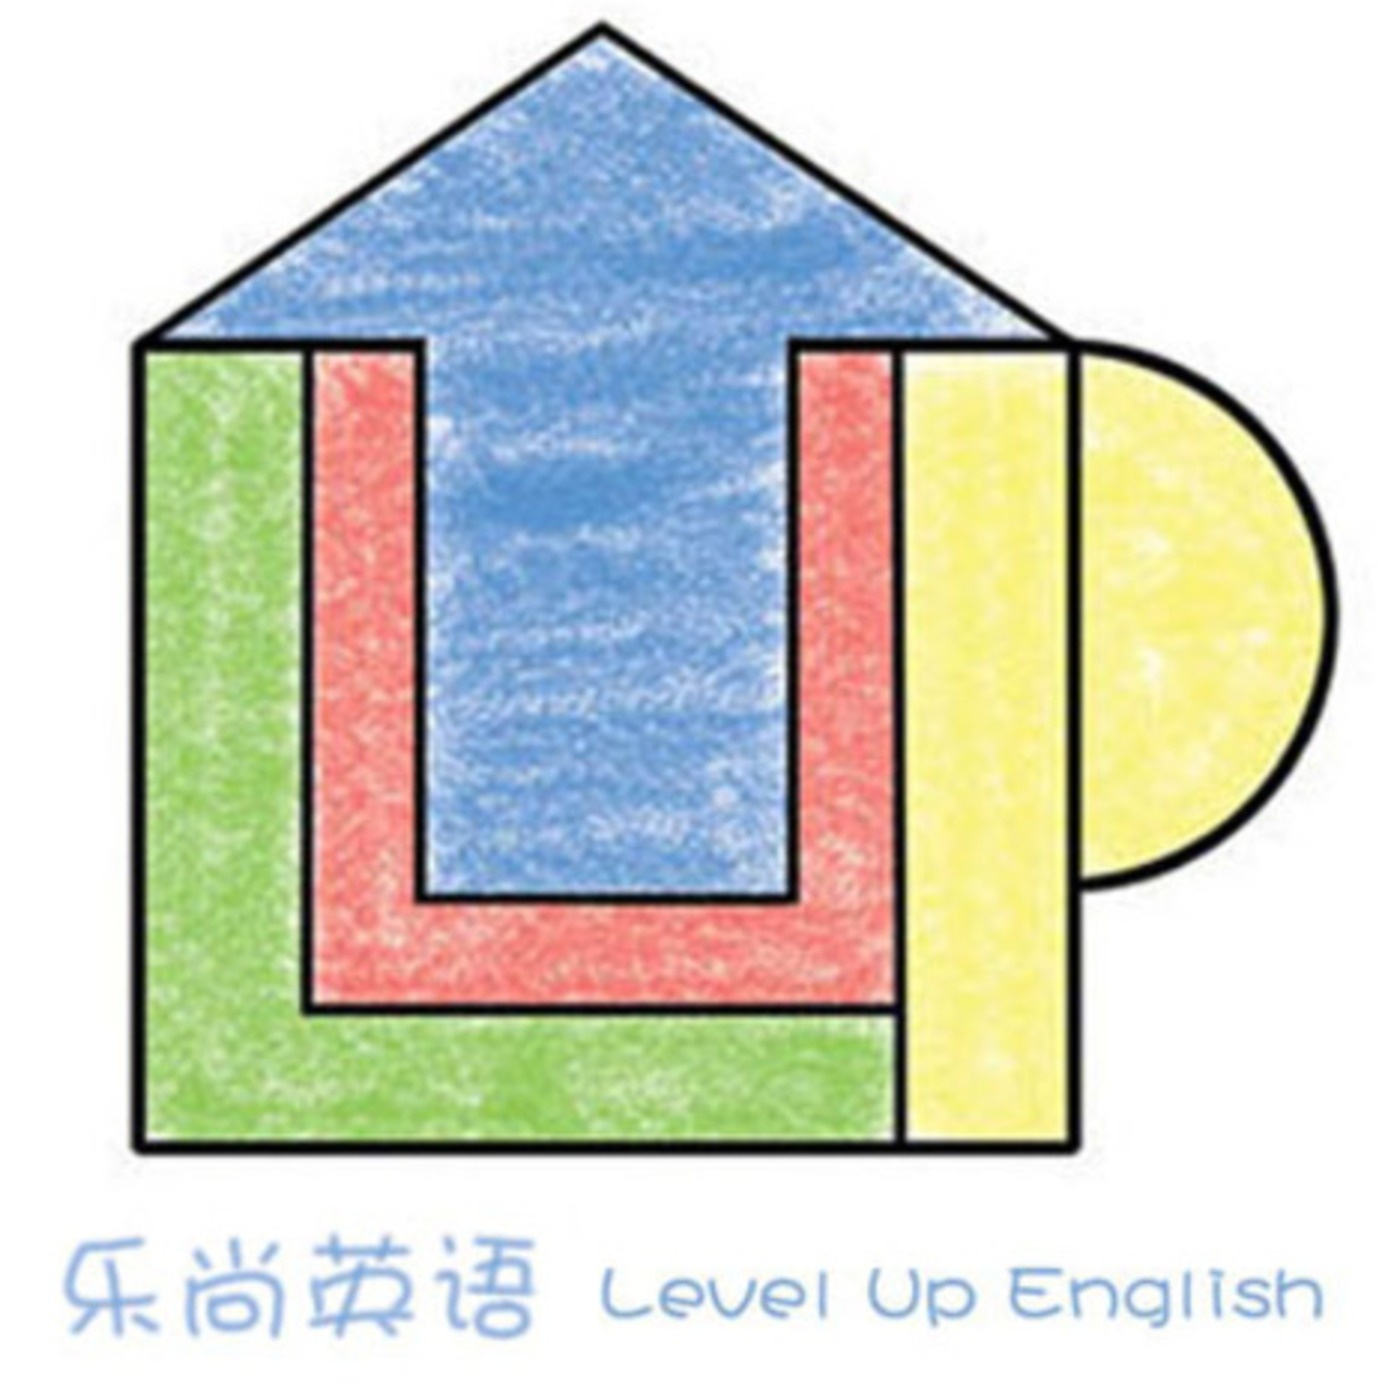 Level Up English Podcast